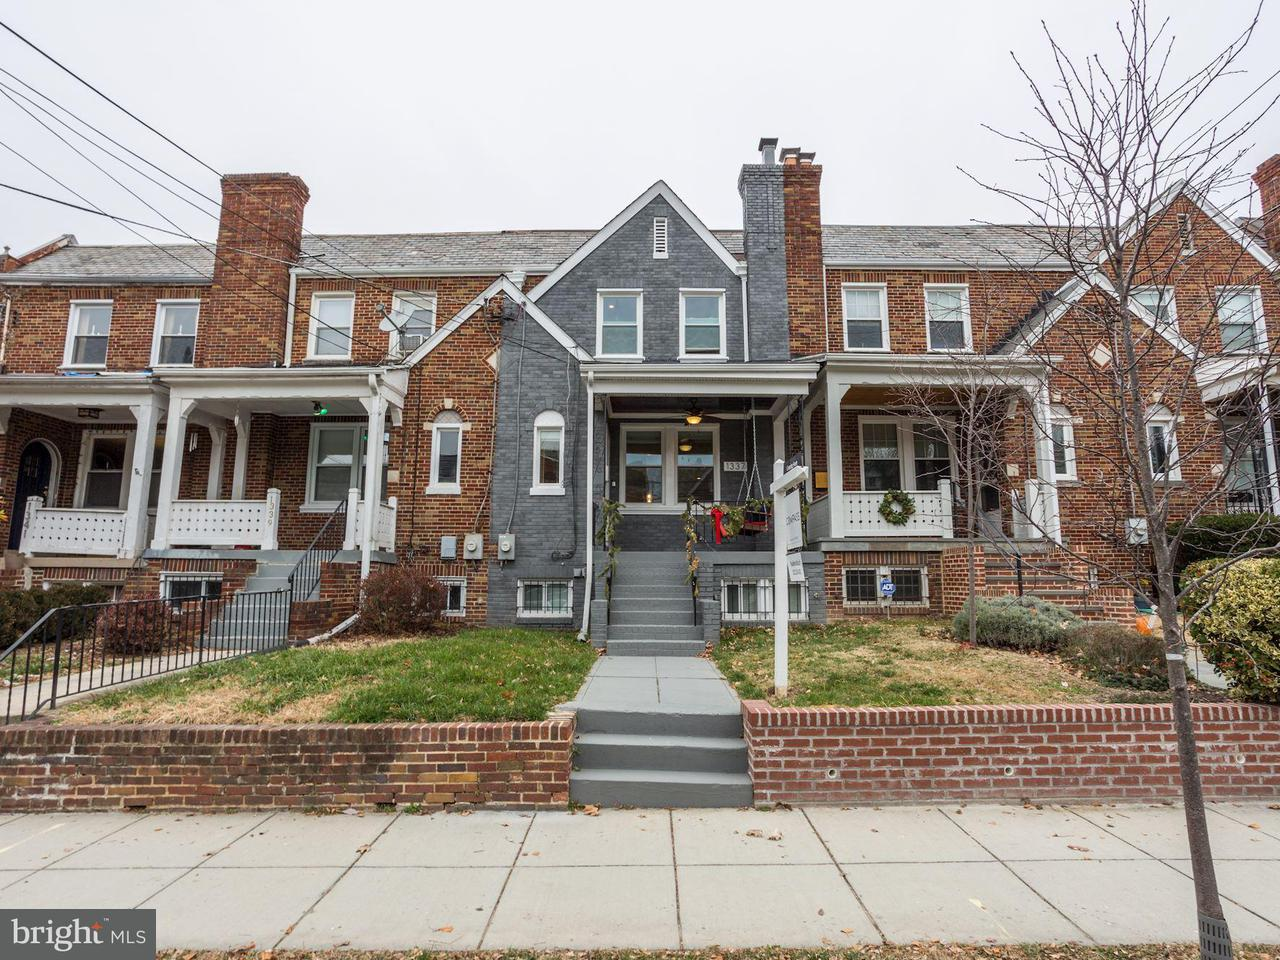 Townhouse for Sale at 1337 Rittenhouse St Nw 1337 Rittenhouse St Nw Washington, District Of Columbia 20011 United States